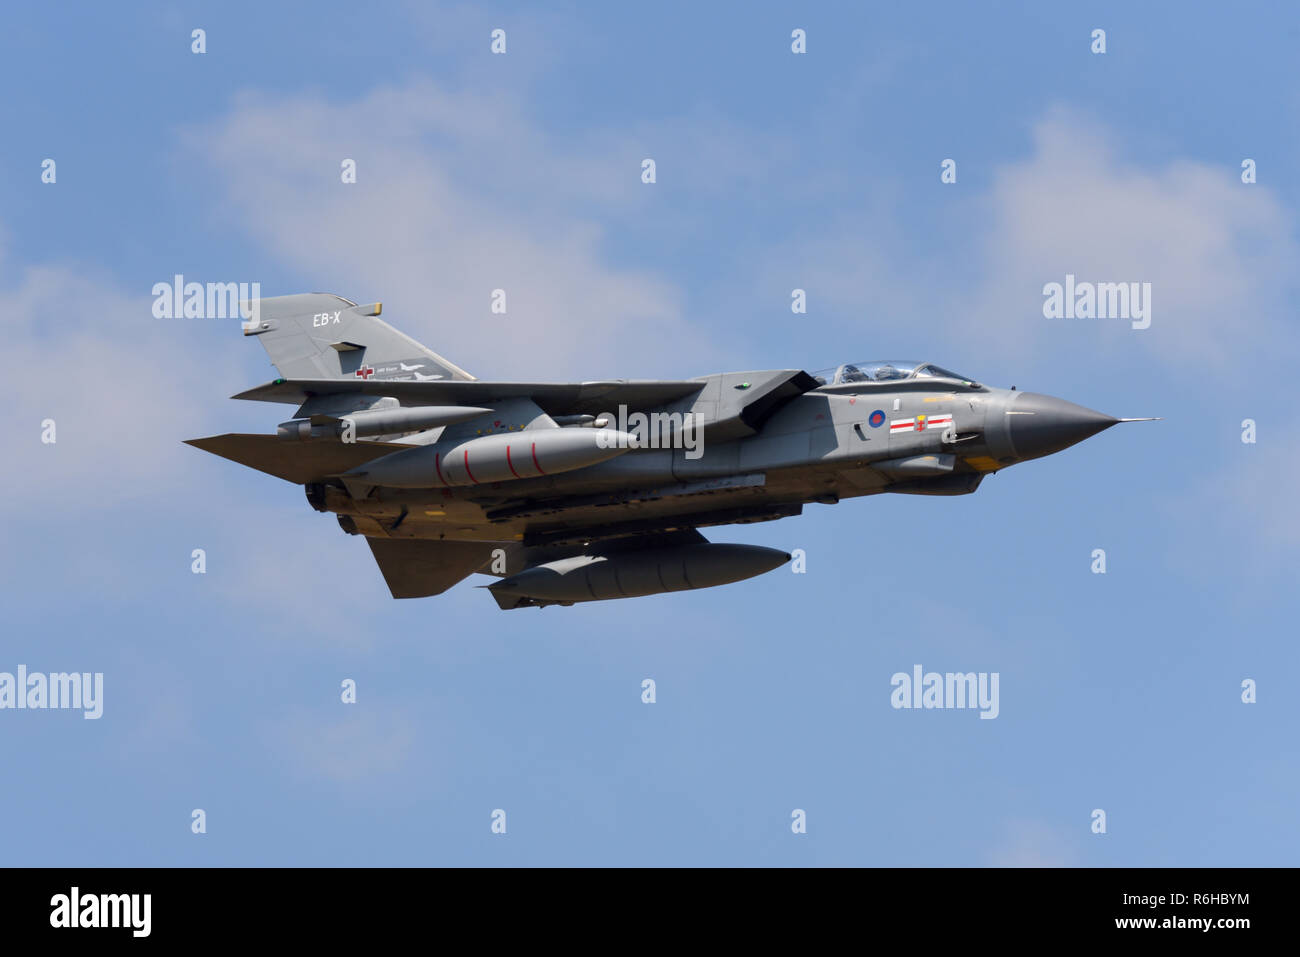 Royal Air Force RAF Panavia Tornado GR4 jet fighter bomber plane flying at Royal International Air Tattoo, RIAT, RAF Fairford airshow. Fast. Speed - Stock Image